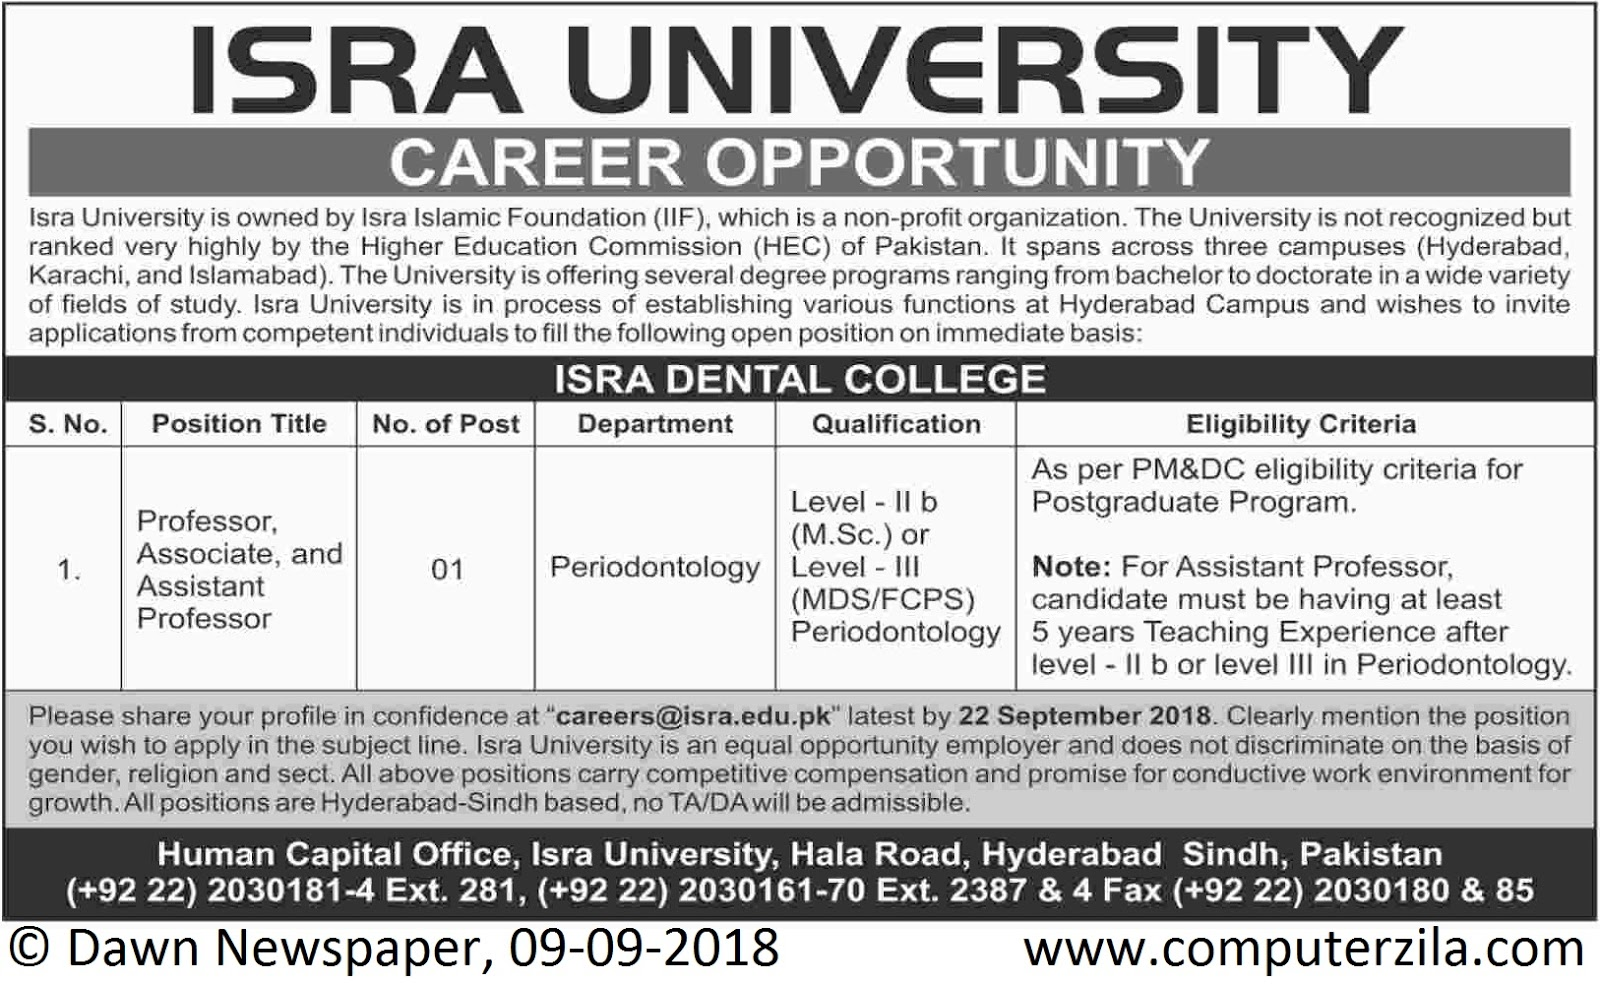 Career Opportunity at Isra University (Isra Dental College)